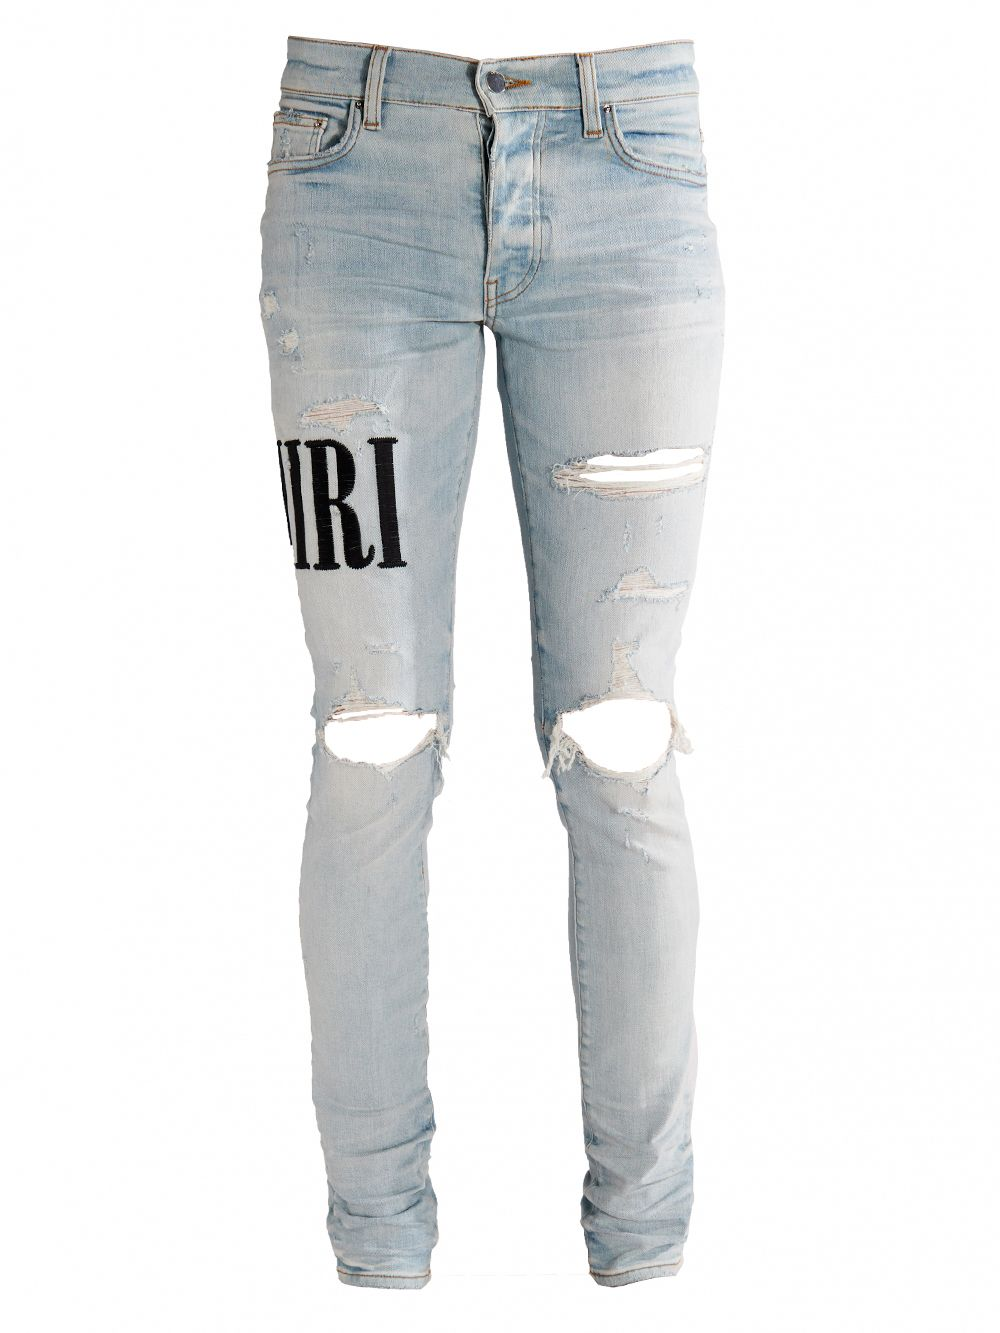 AMIRI DISTRESSED EMBROIDERED LOGO JEANS